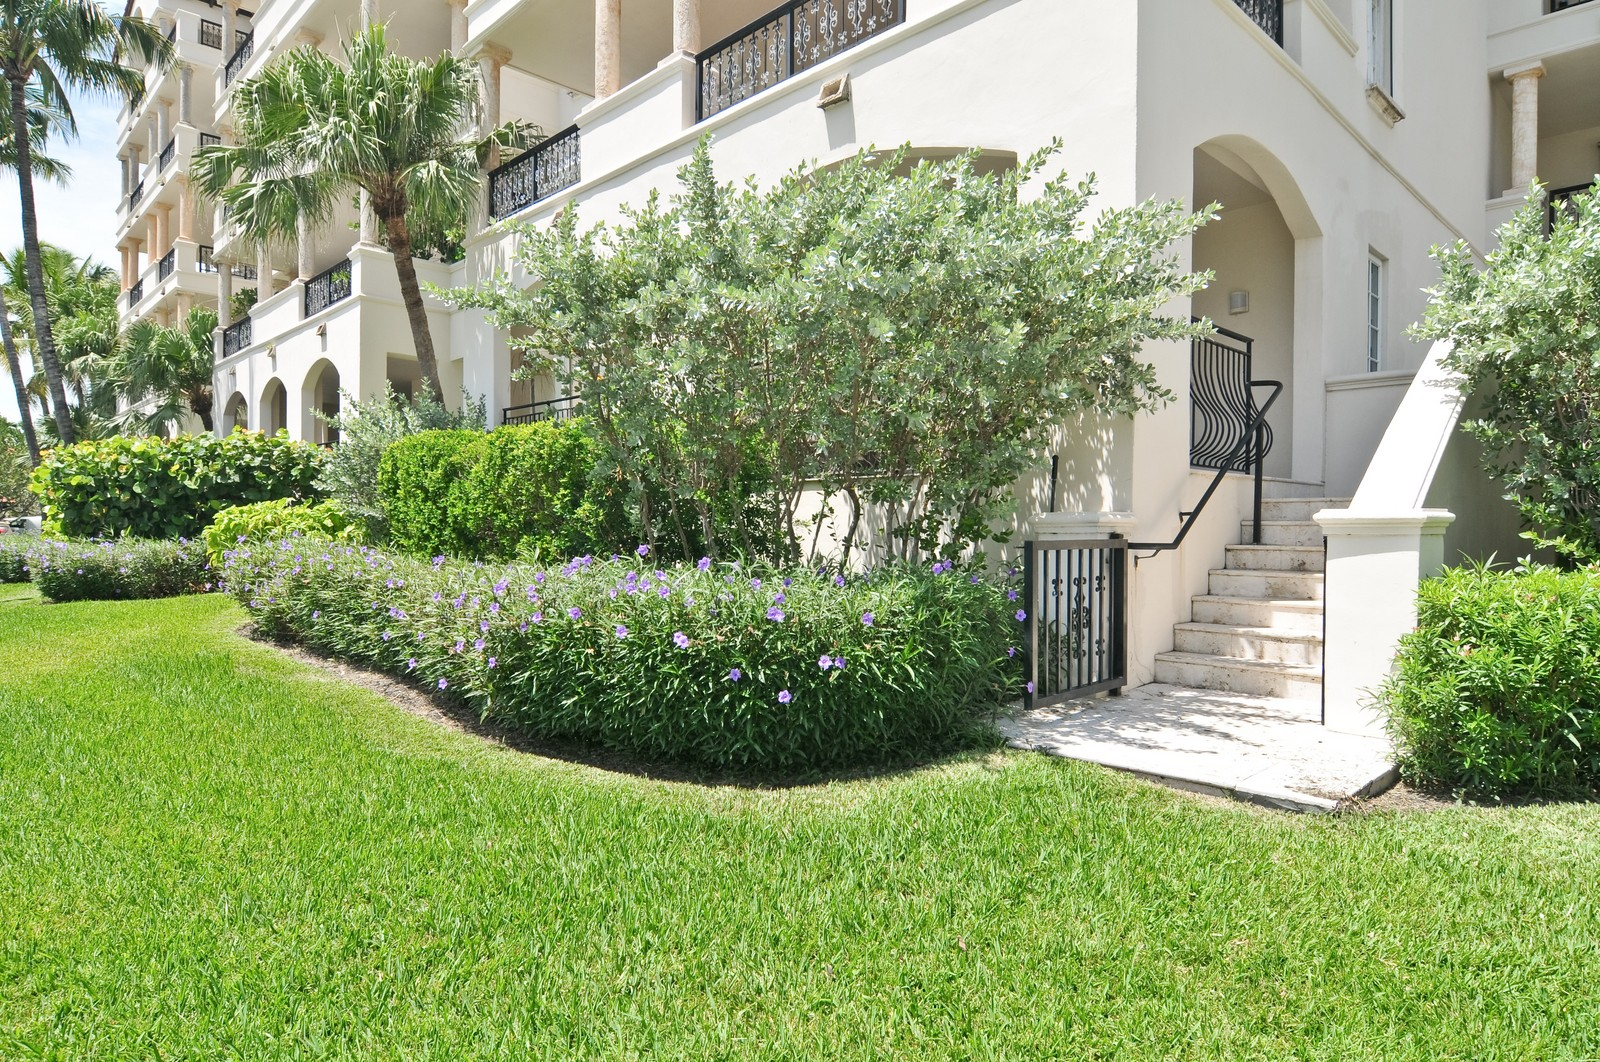 Real Estate Photography - 19213 Fisher Island Drive, Fisher Island, FL, 33109 - Location 1